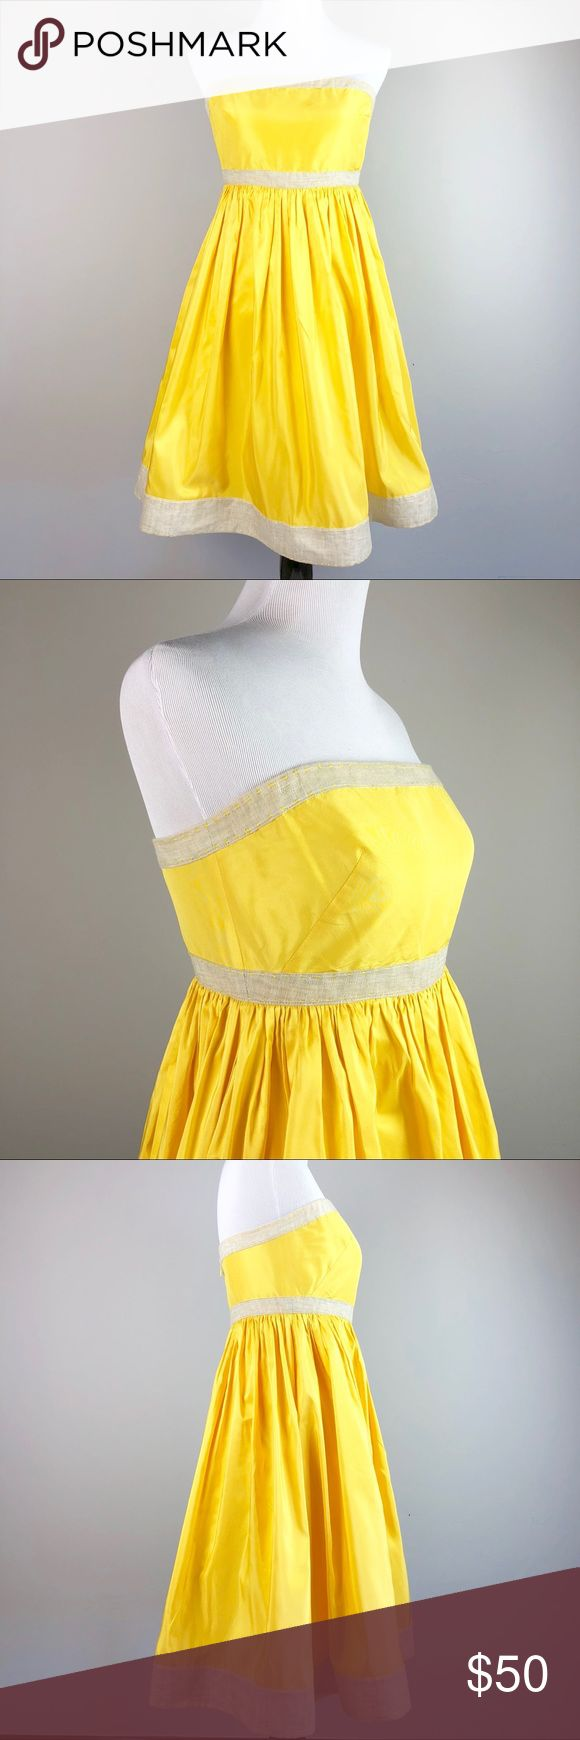 """J. Crew Silk Lemon Yellow & Linen Strapless Dress Like new, J. Crew 100% silk taffeta in a beautiful sunny yellow. Trimmed in Linen, this dress screams """"spring"""". Strapless with an A line skirt. Size 10. Measures: Top of bust: 17.5"""" Underbust (high waist): 15""""  Length: 33""""  🚭smoke and pet free🏡 J. Crew Dresses Strapless"""